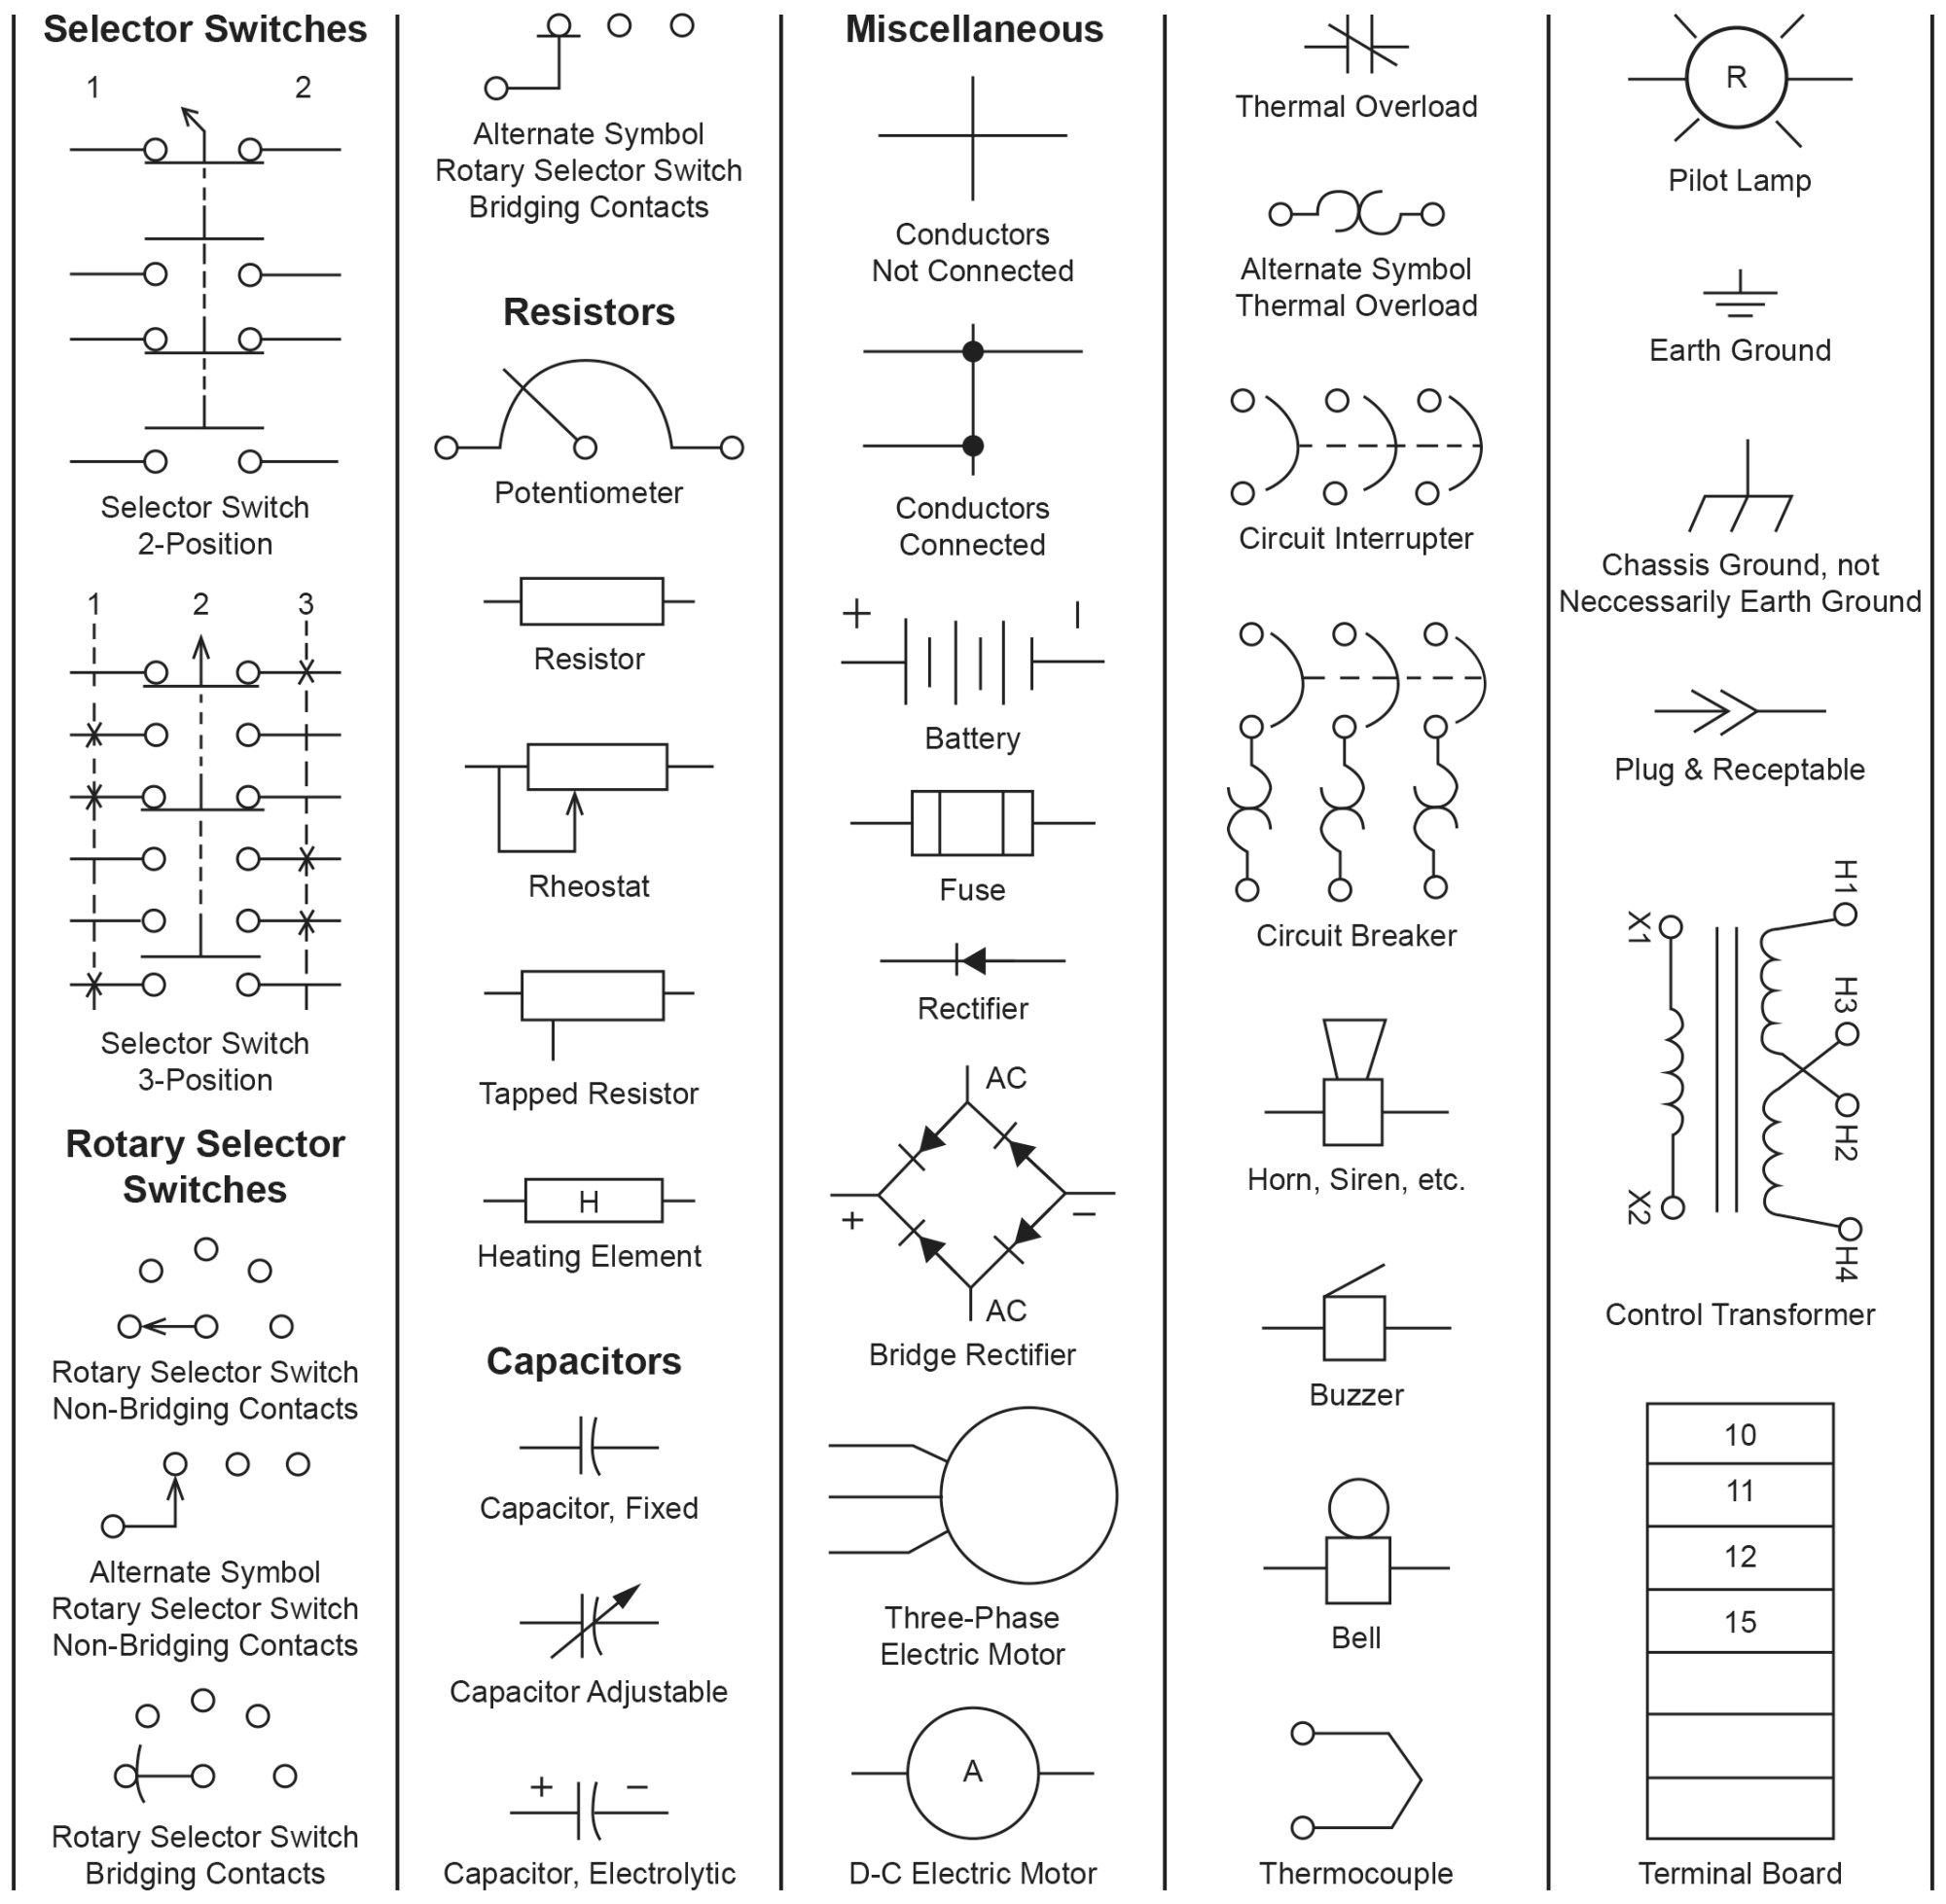 hight resolution of jic standard symbols for electrical ladder diagrams womack machine electrical ladder diagrams float switches